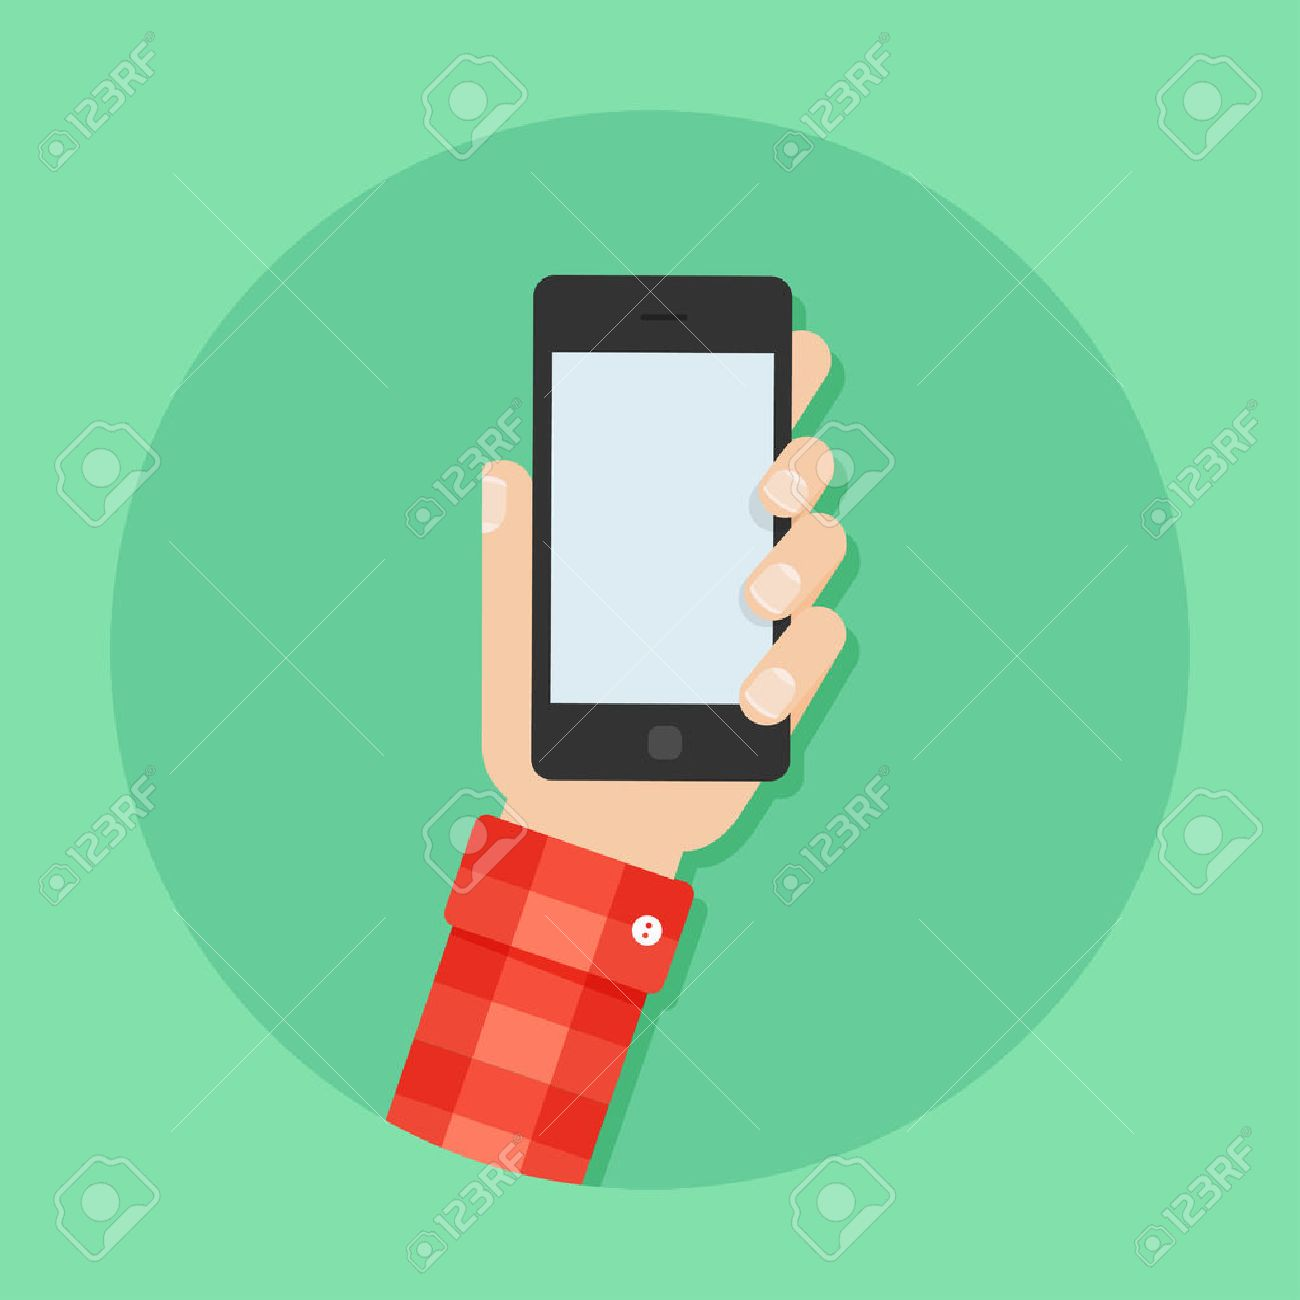 Hand with phone vector illustration. Man's hand with phone. Hand with phone flat illustration. Hand holding a phone concept. Smartphone in hand. Hand with phone isolated on background. - 55508905